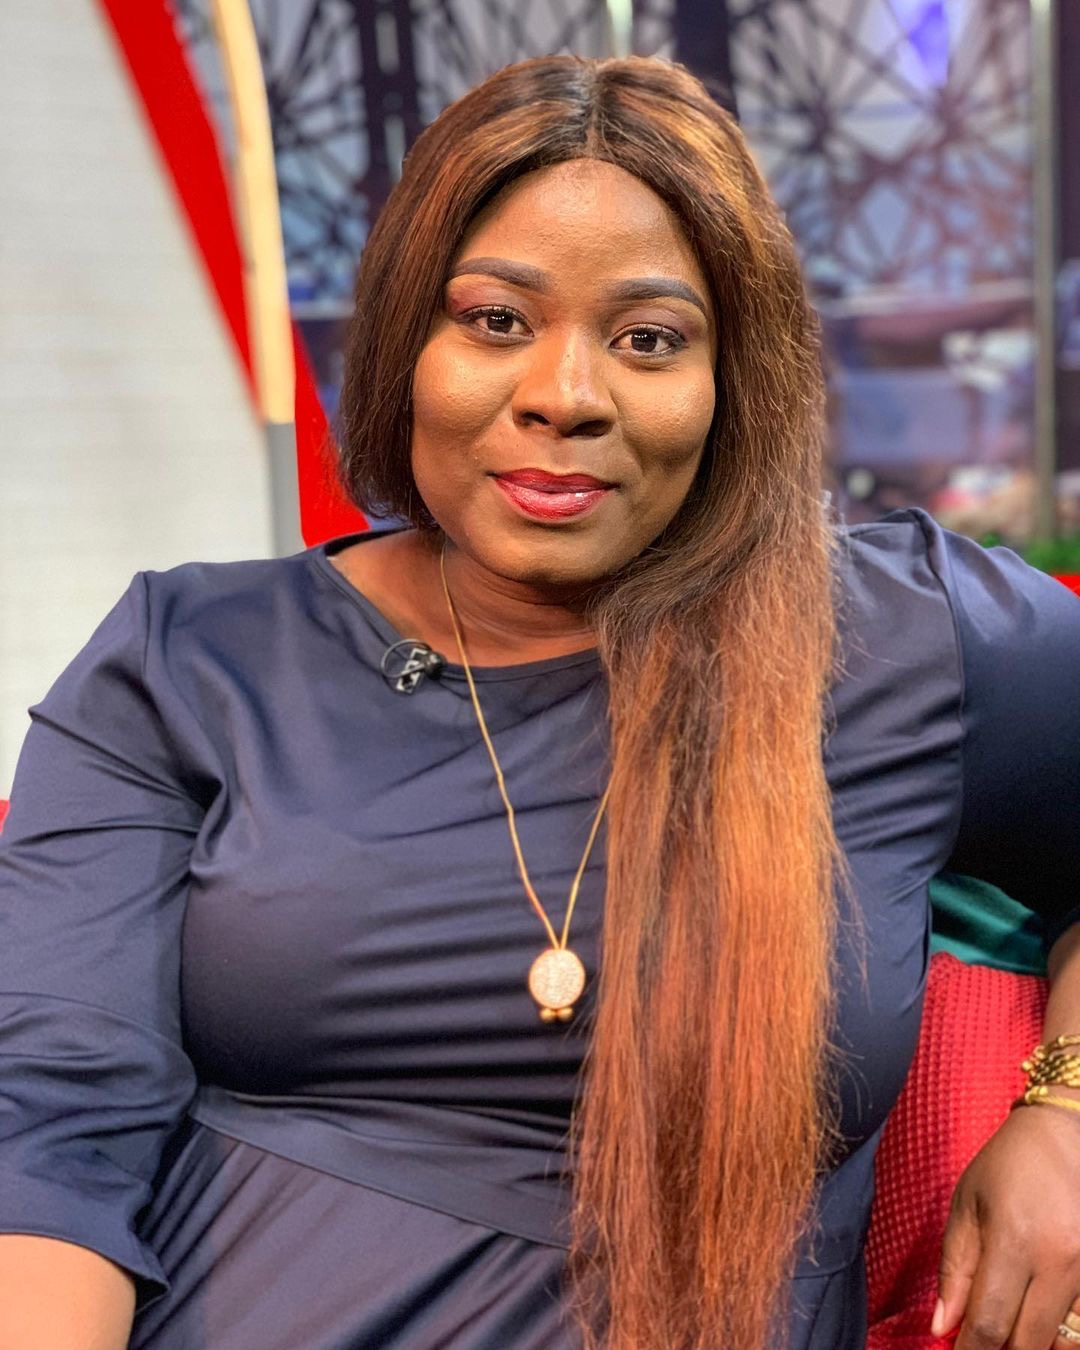 I Beg To Differ, Shatta Wale Is Not More Popular Than The Sitting President - Whitney Boakye-Mensah